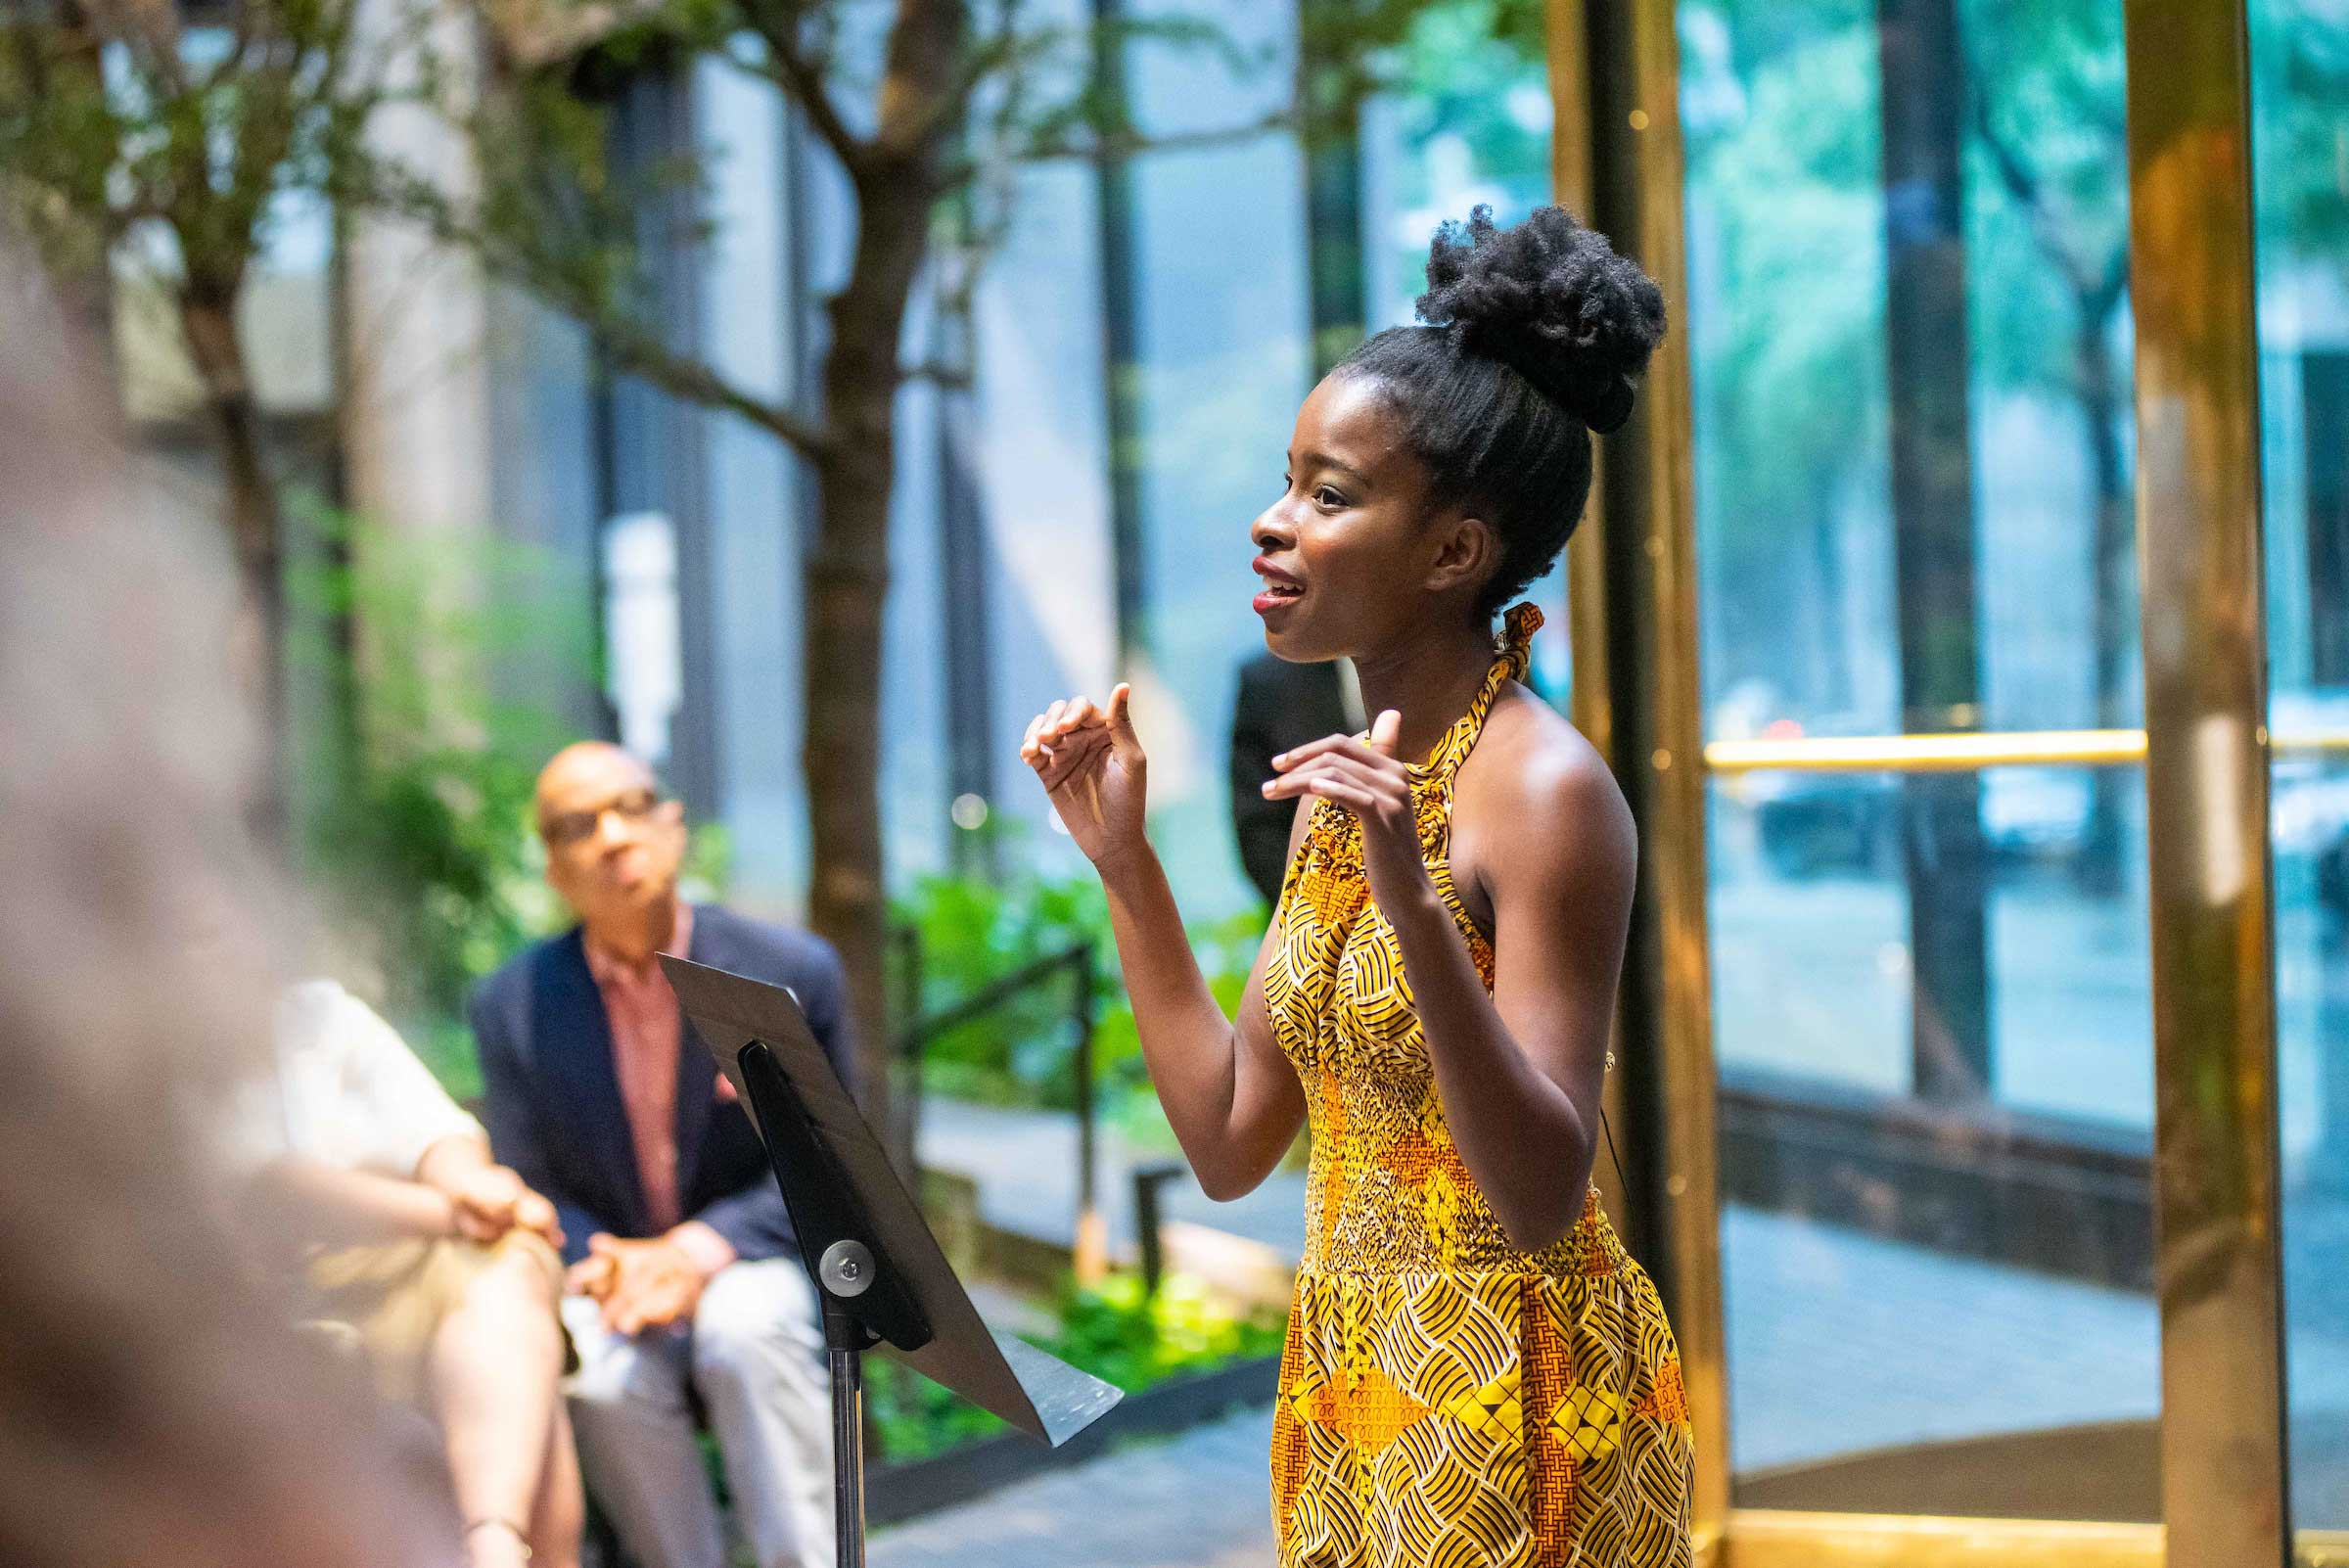 Amanda Gorman gestures with her hands as she recites a poem wearing a patterned yellow dress behind a music stand in the Ford Foundation Garden. Darren Walker looks on in the background. PHOTO: Jane Kratochvil